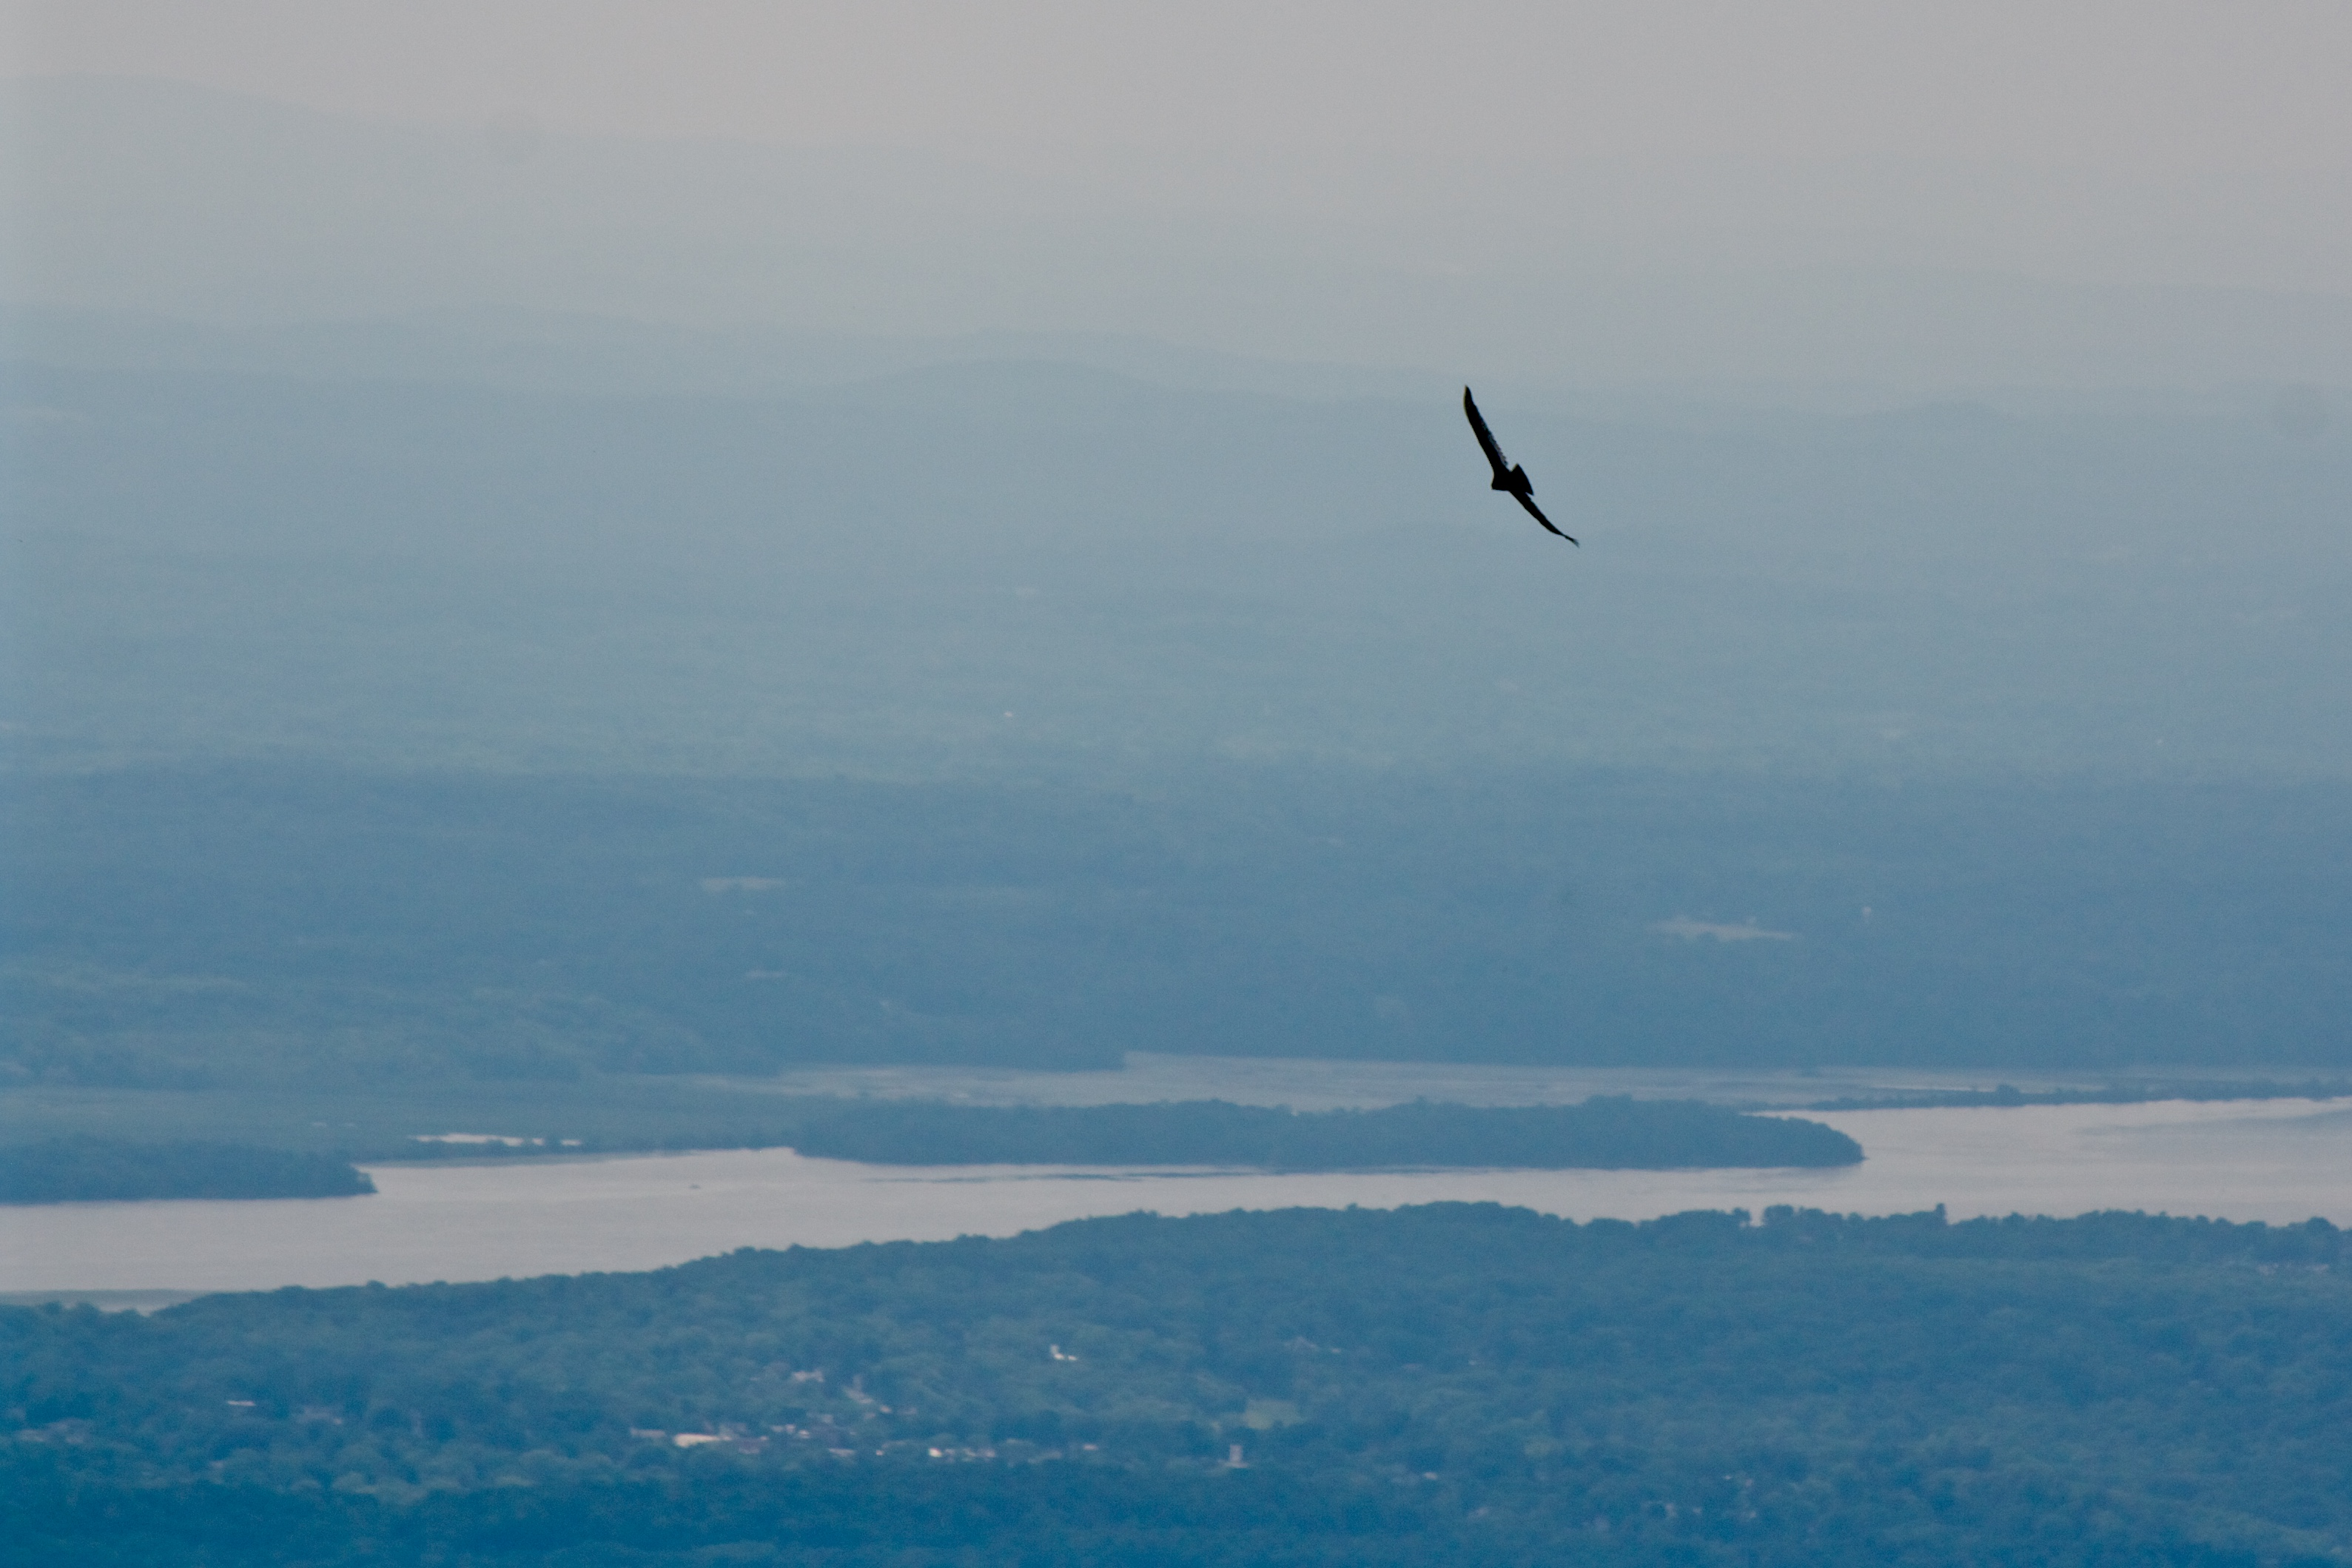 Catskills Mountains hike with soaring Raptor